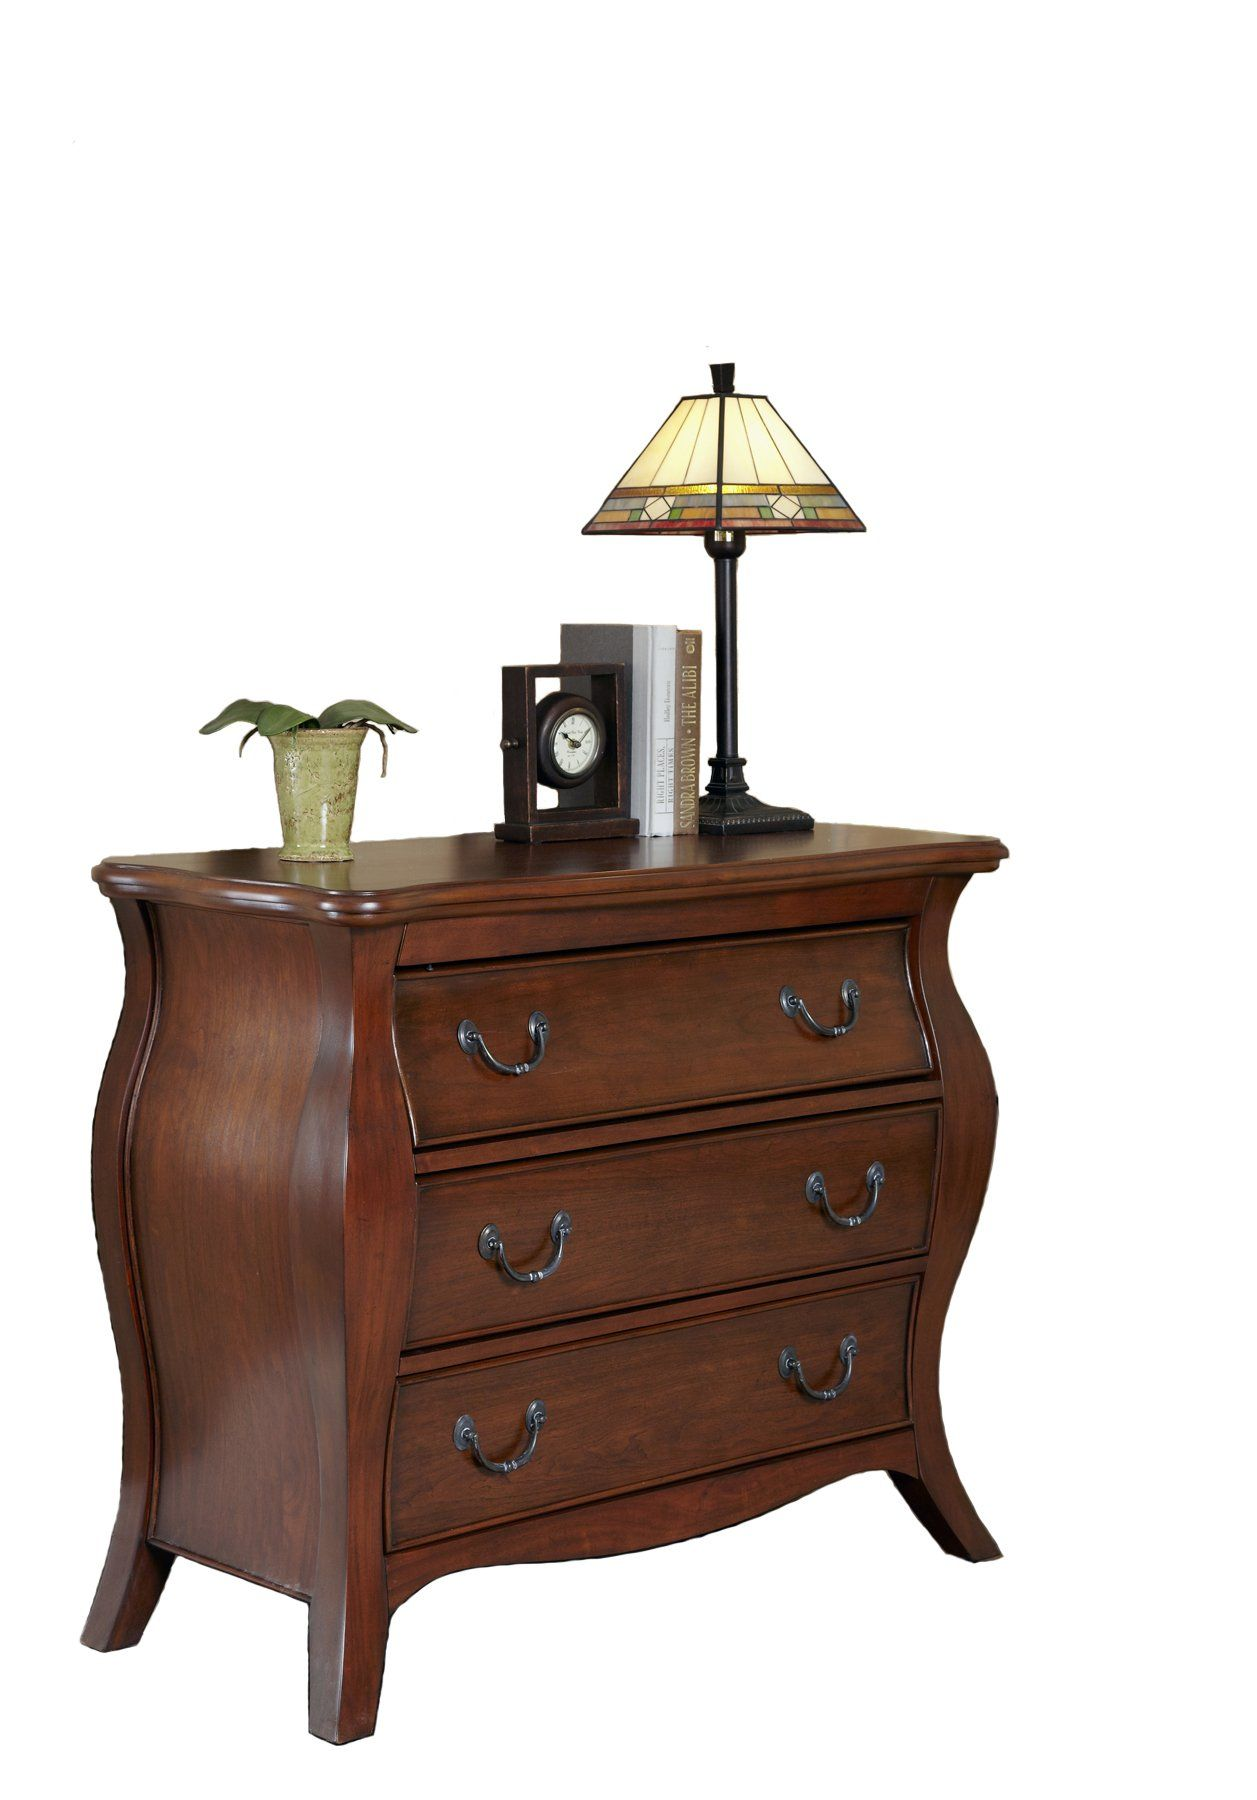 Home styles the regency bombe chest cherry finish furniture